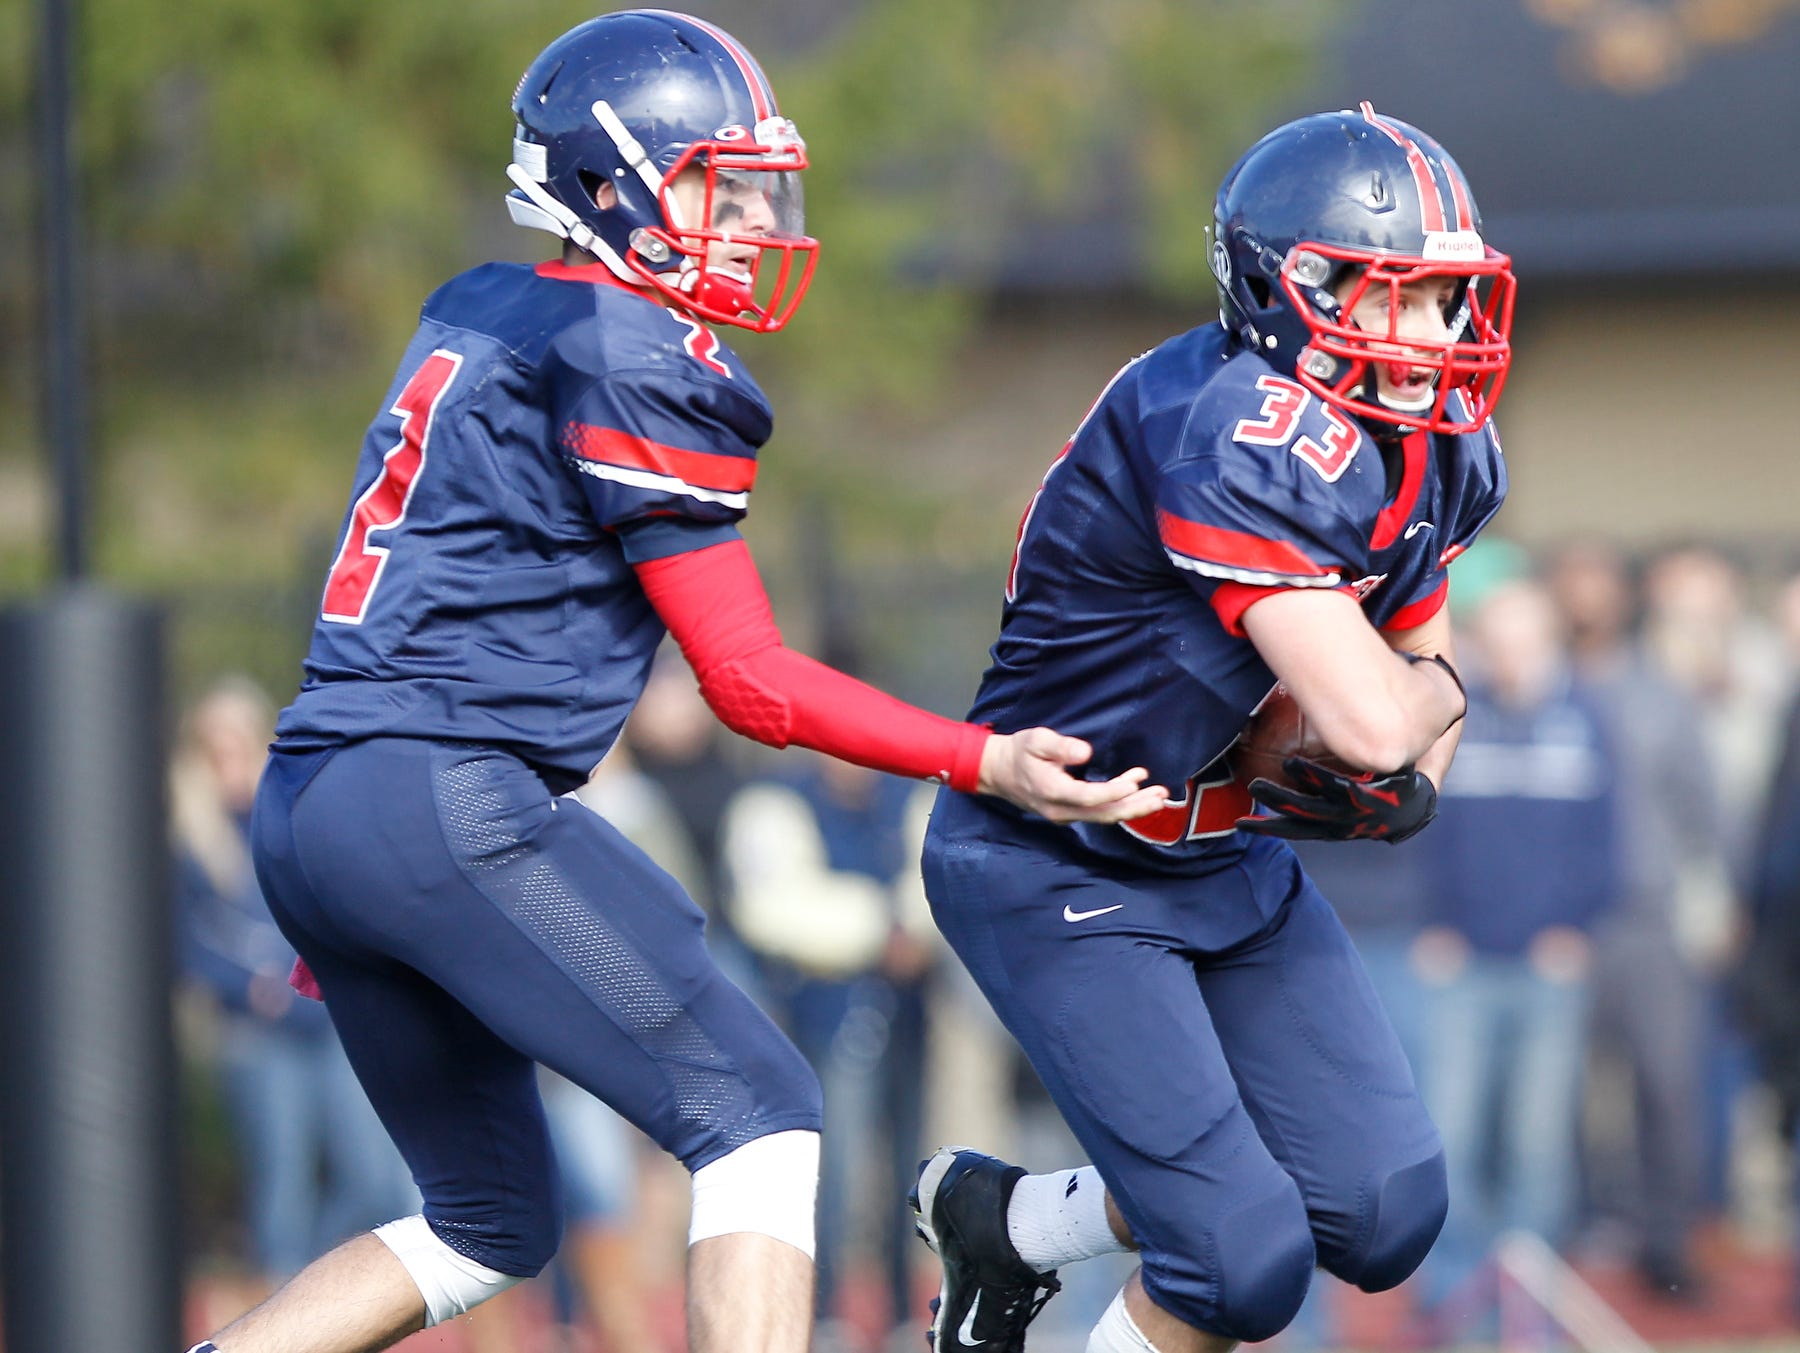 Eastchester quarterback John Arcidiacono (2) hands off to John Guido (33) during their 19-27 loss to Our Lady of Lourdes High School in the class A semi-final football game in Eastchester on Saturday, Oct. 31, 2015.